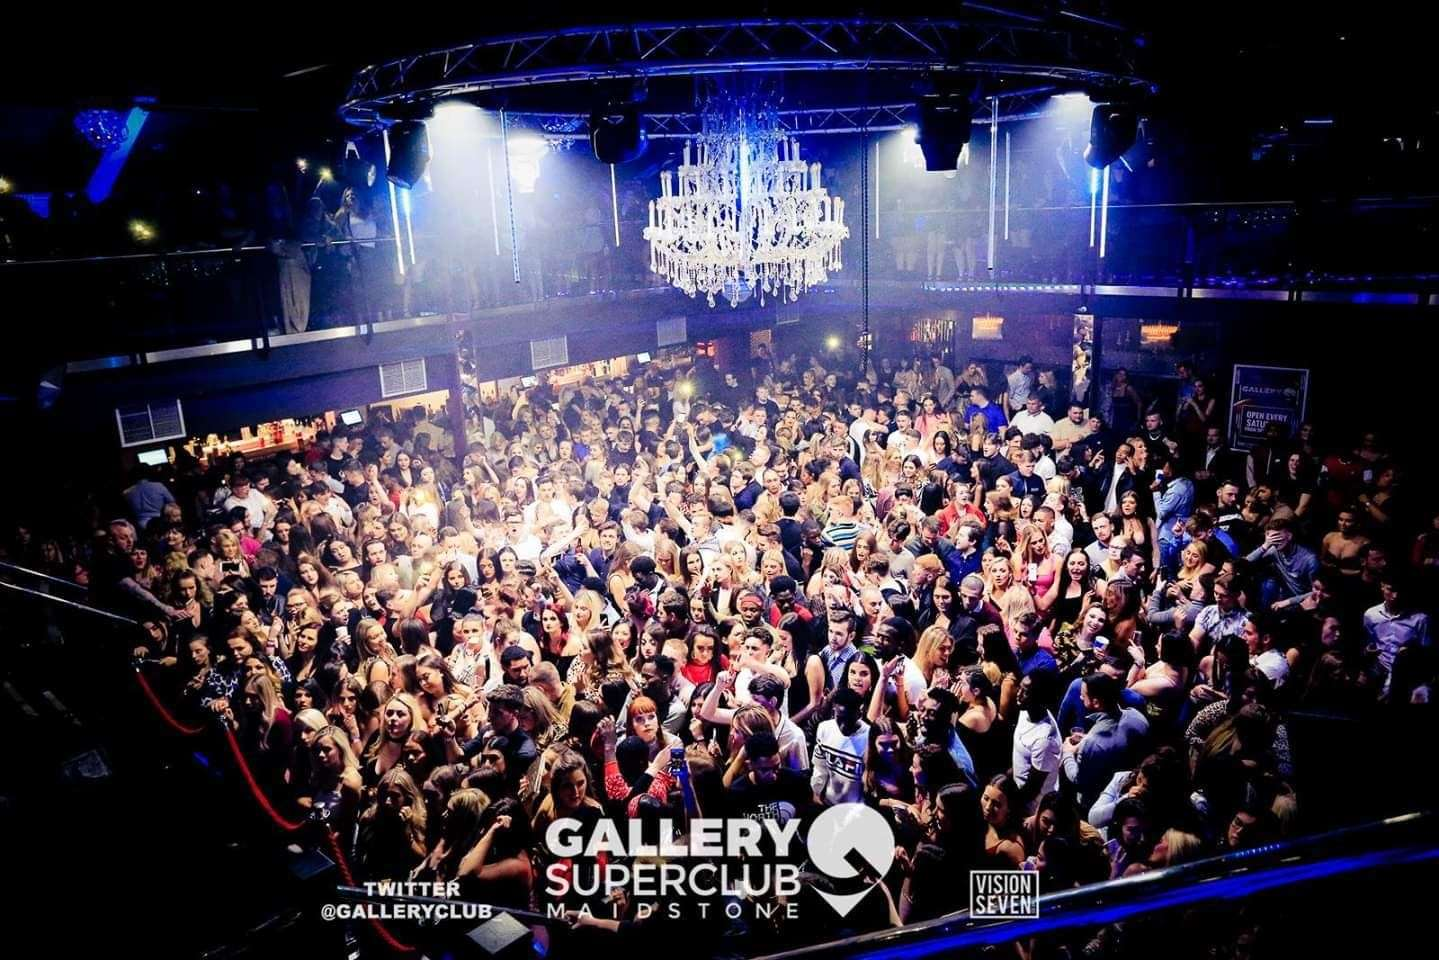 Maidstone's Gallery nightclub